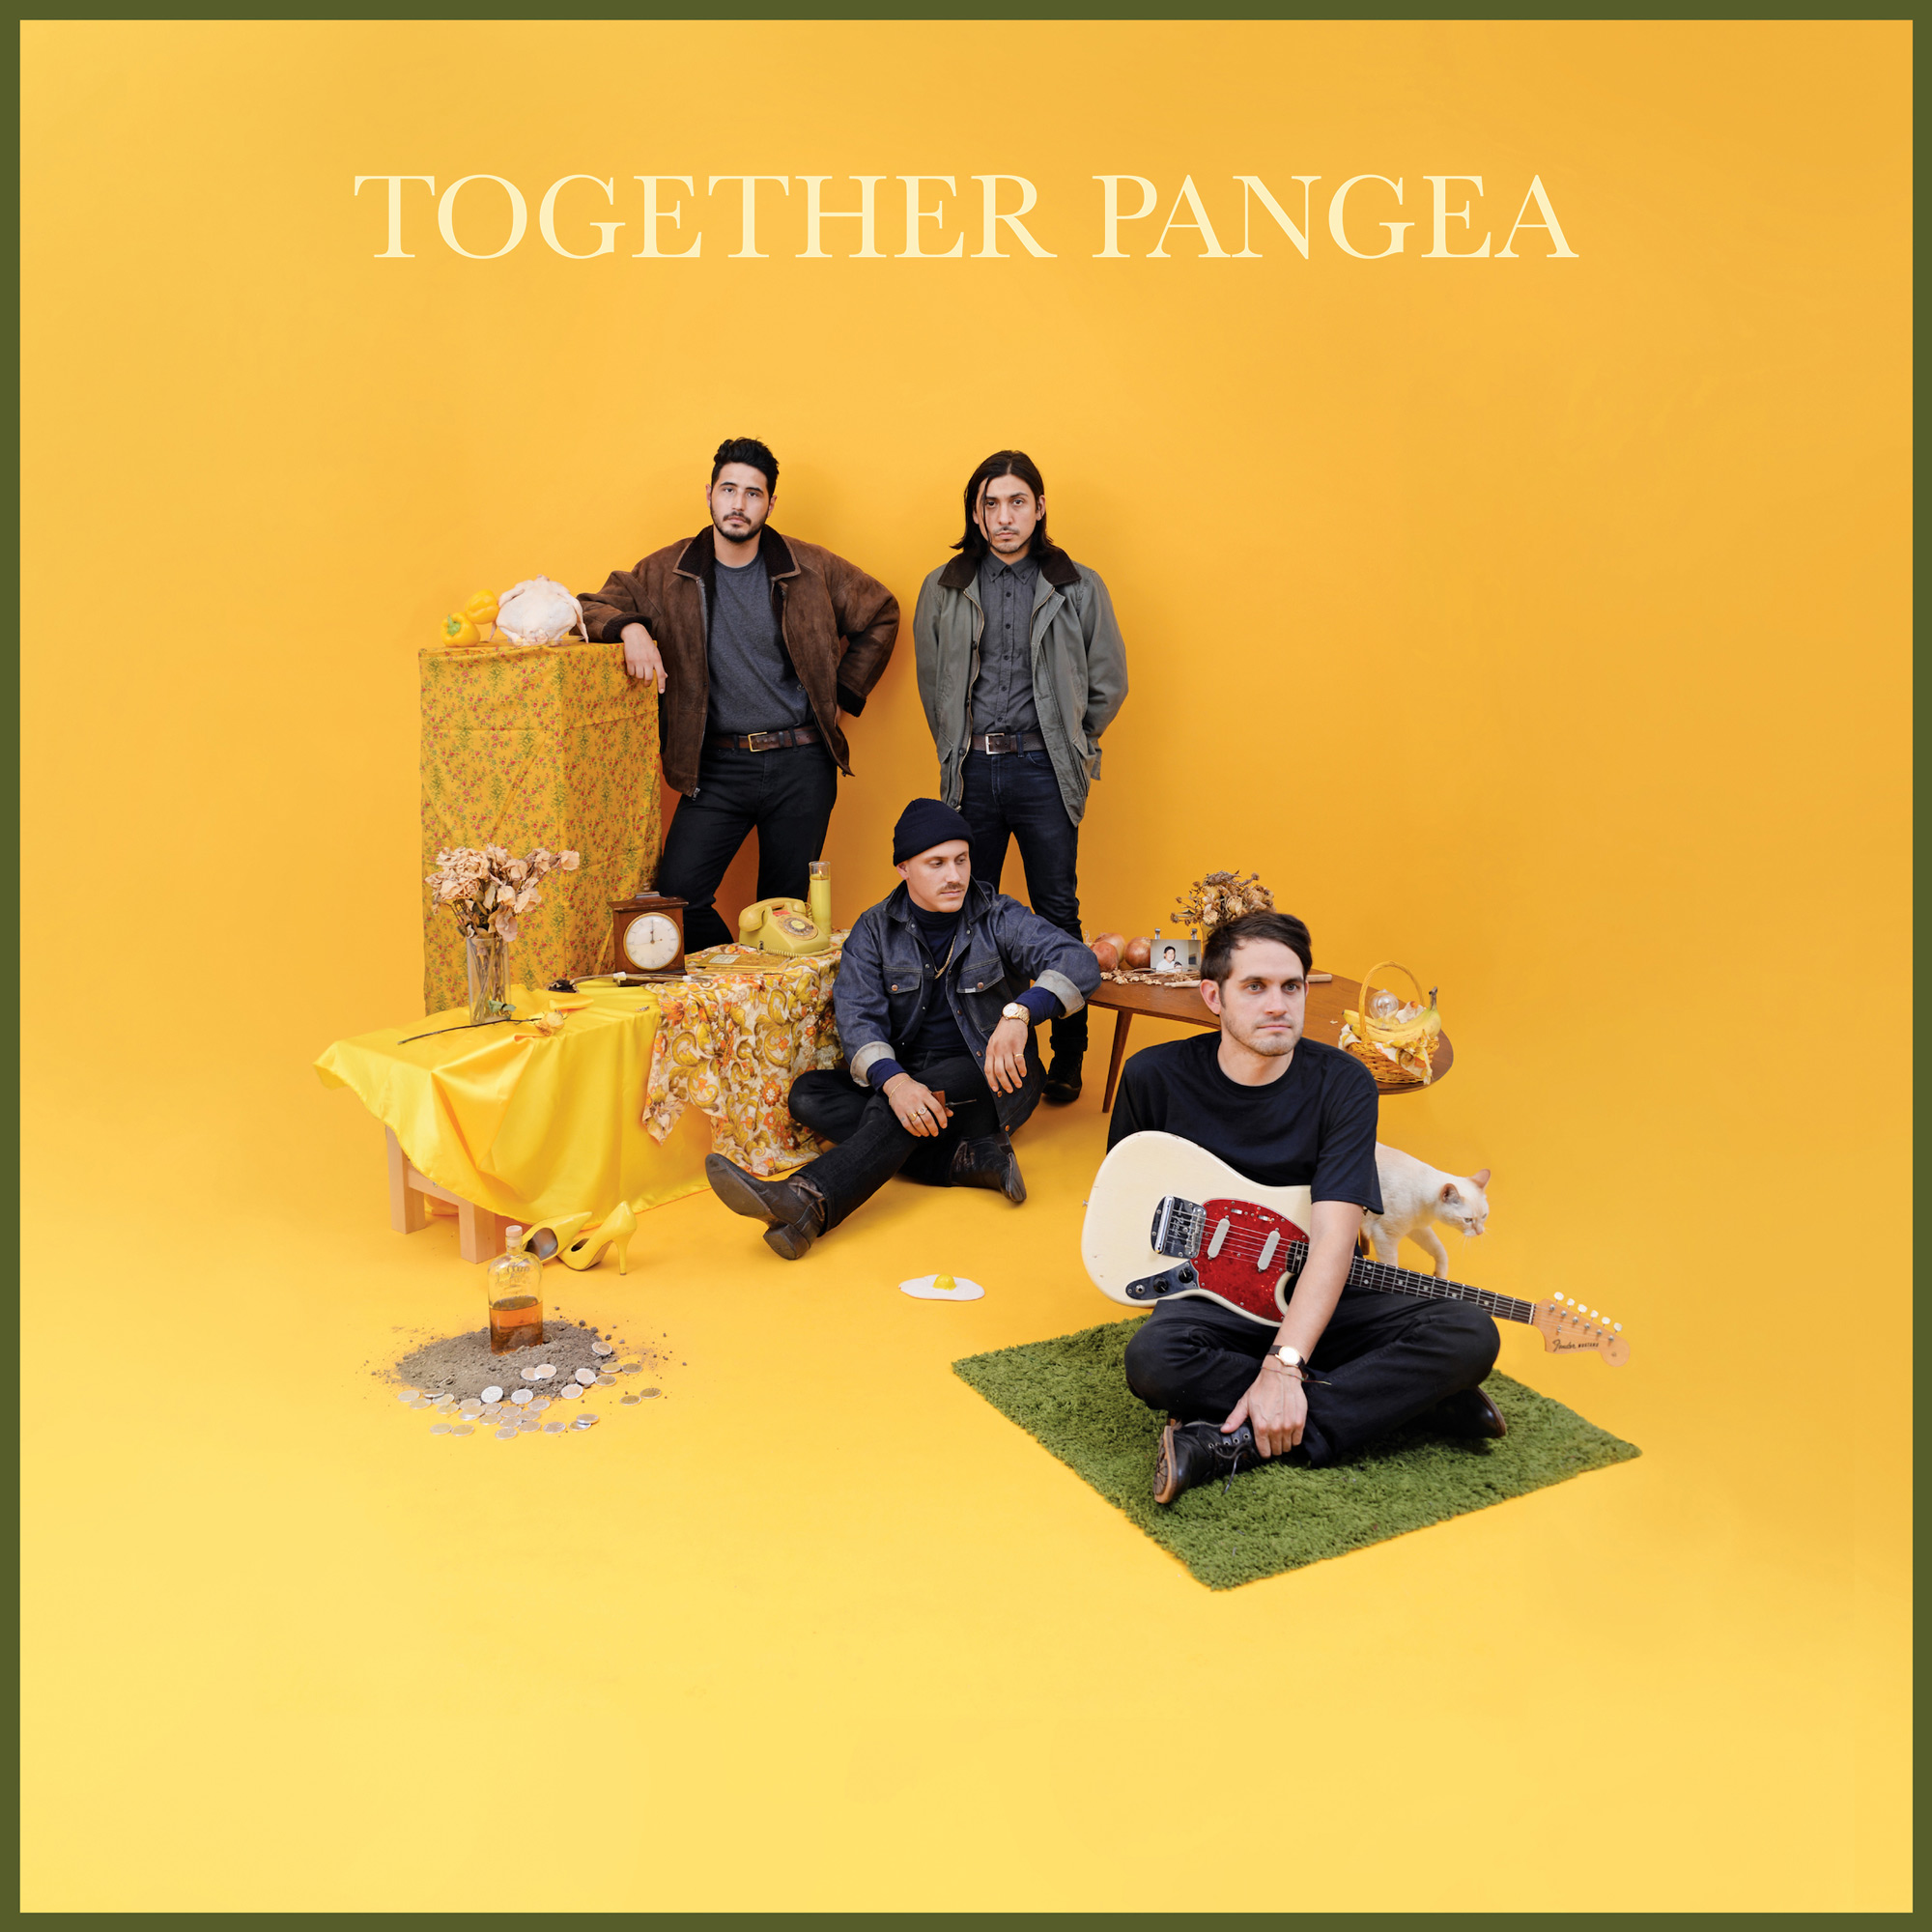 together PANGEA * TALL JUAN * DADDY ISSUES * LALA LALA